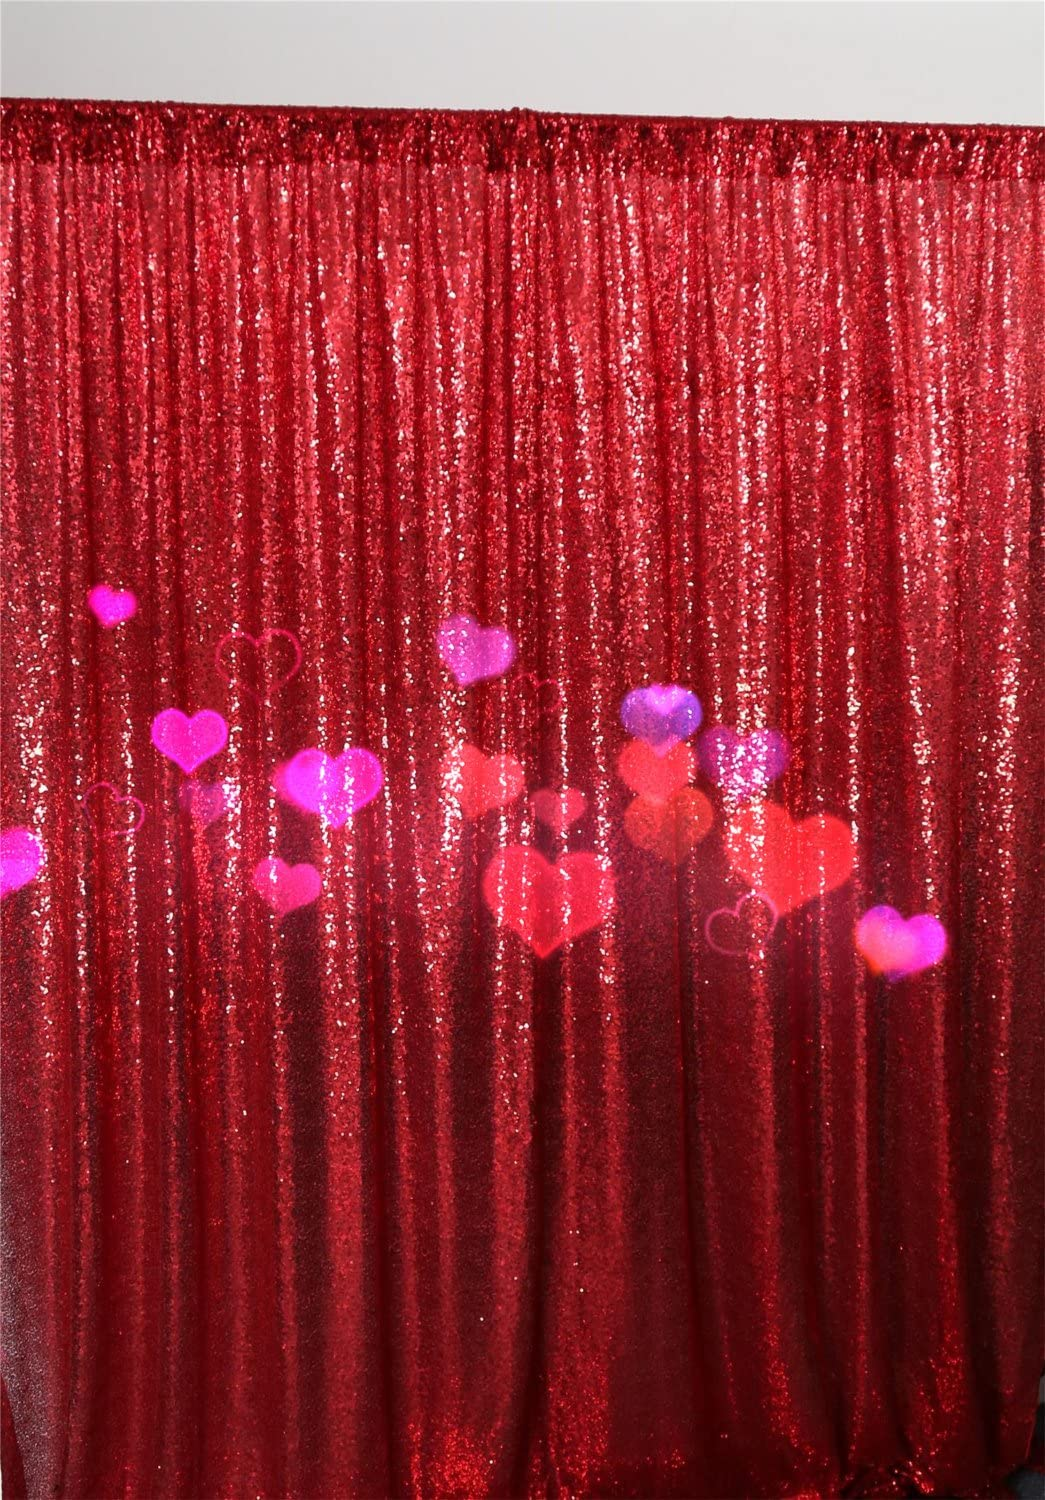 TRLYC 96 96 Gold Sequin Photo Booth Backdrop Sparkly Curtain for Wedding Party Decoration